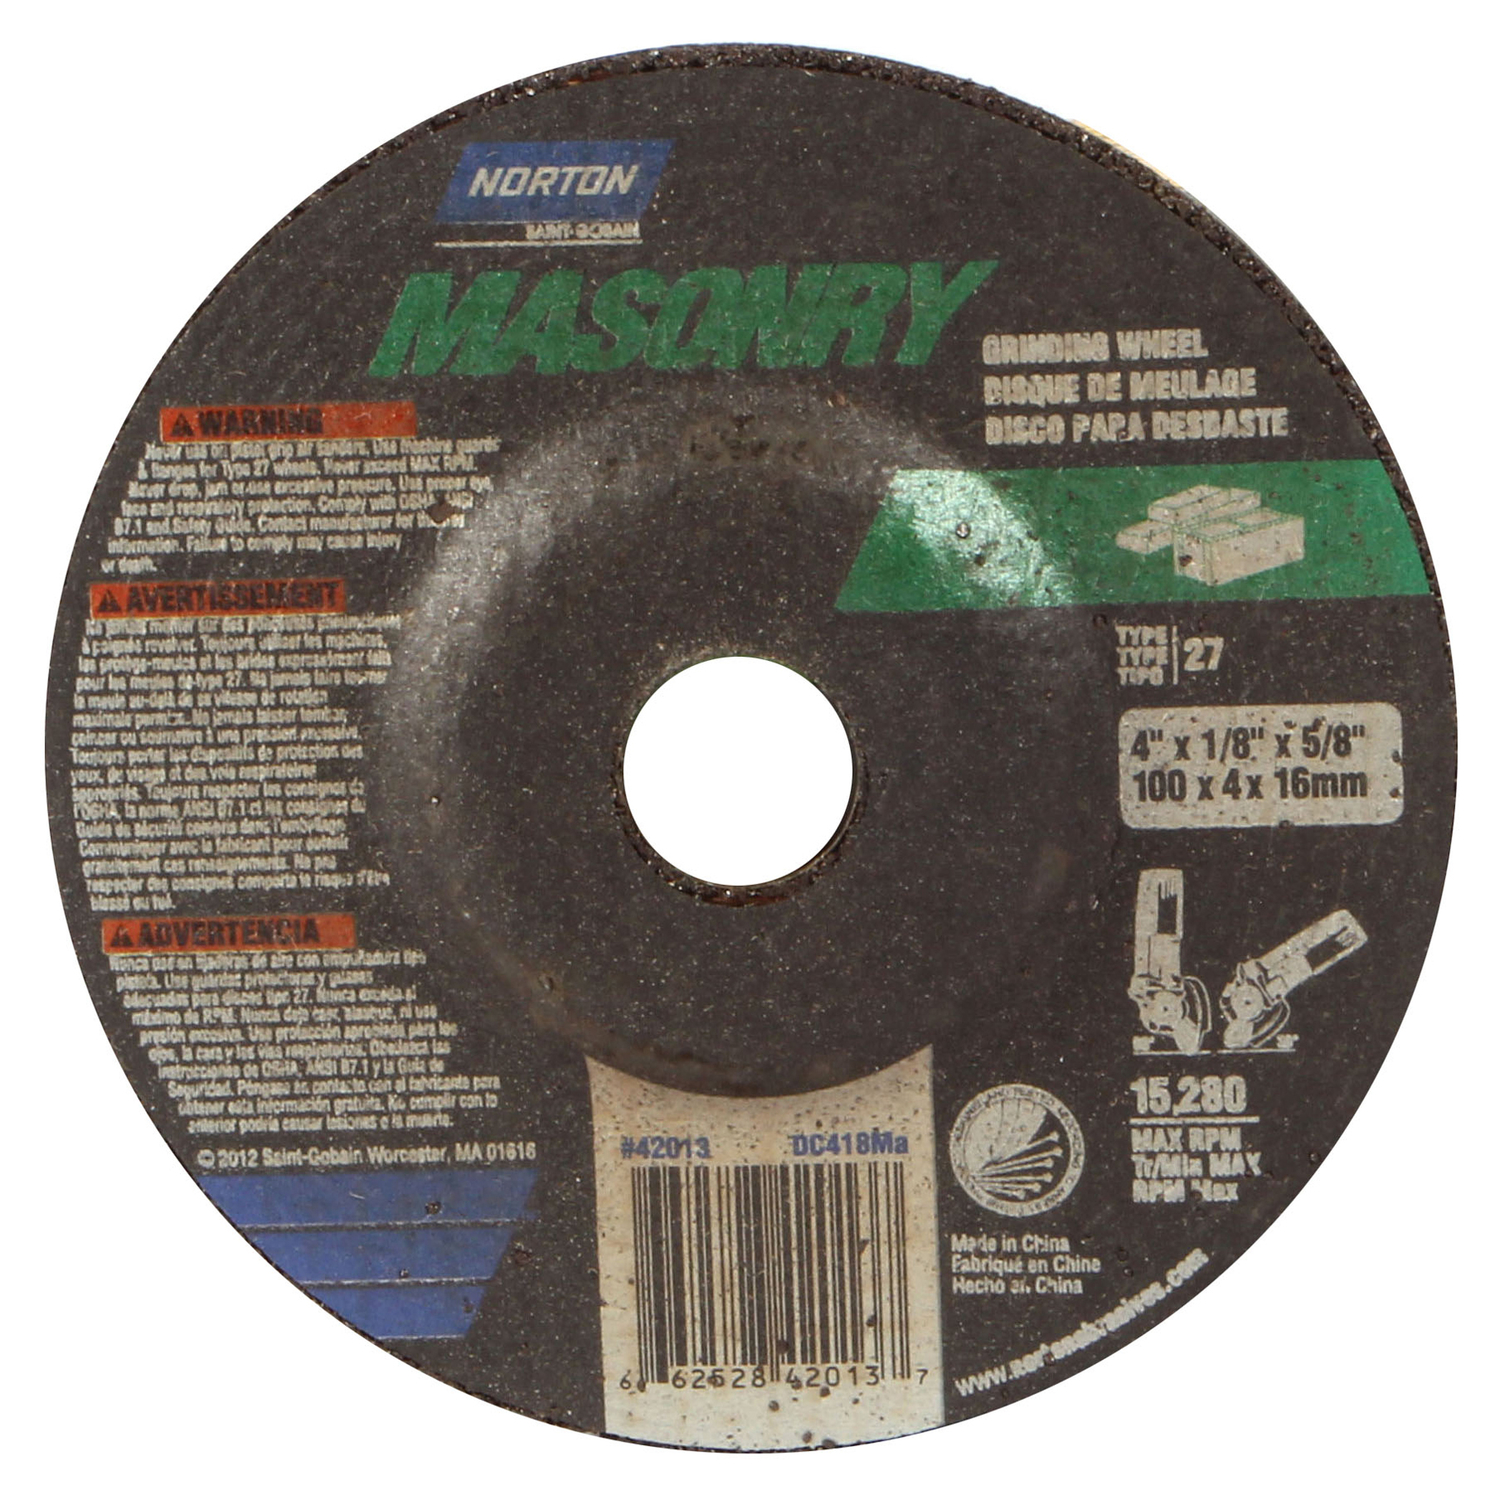 Norton  Masonry  4 in. Dia. x 1/8 in. thick  x 5/8 in.   Grinding Wheel  15280 rpm 1 pc. Silicon Car